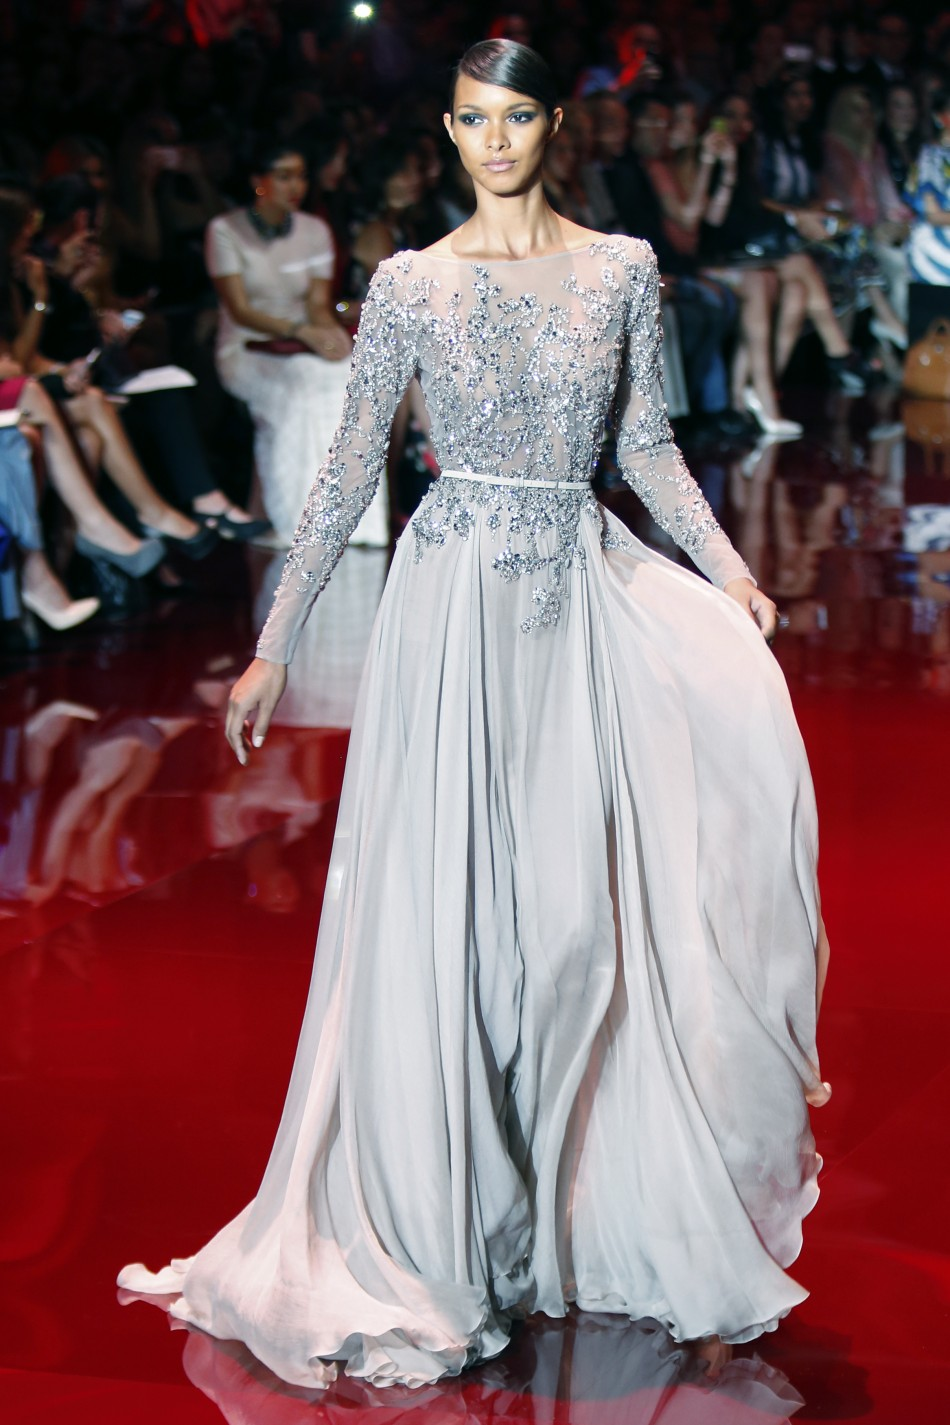 Paris fashion week 2013 elie saab s royal touch creates for Designer haute couture dresses